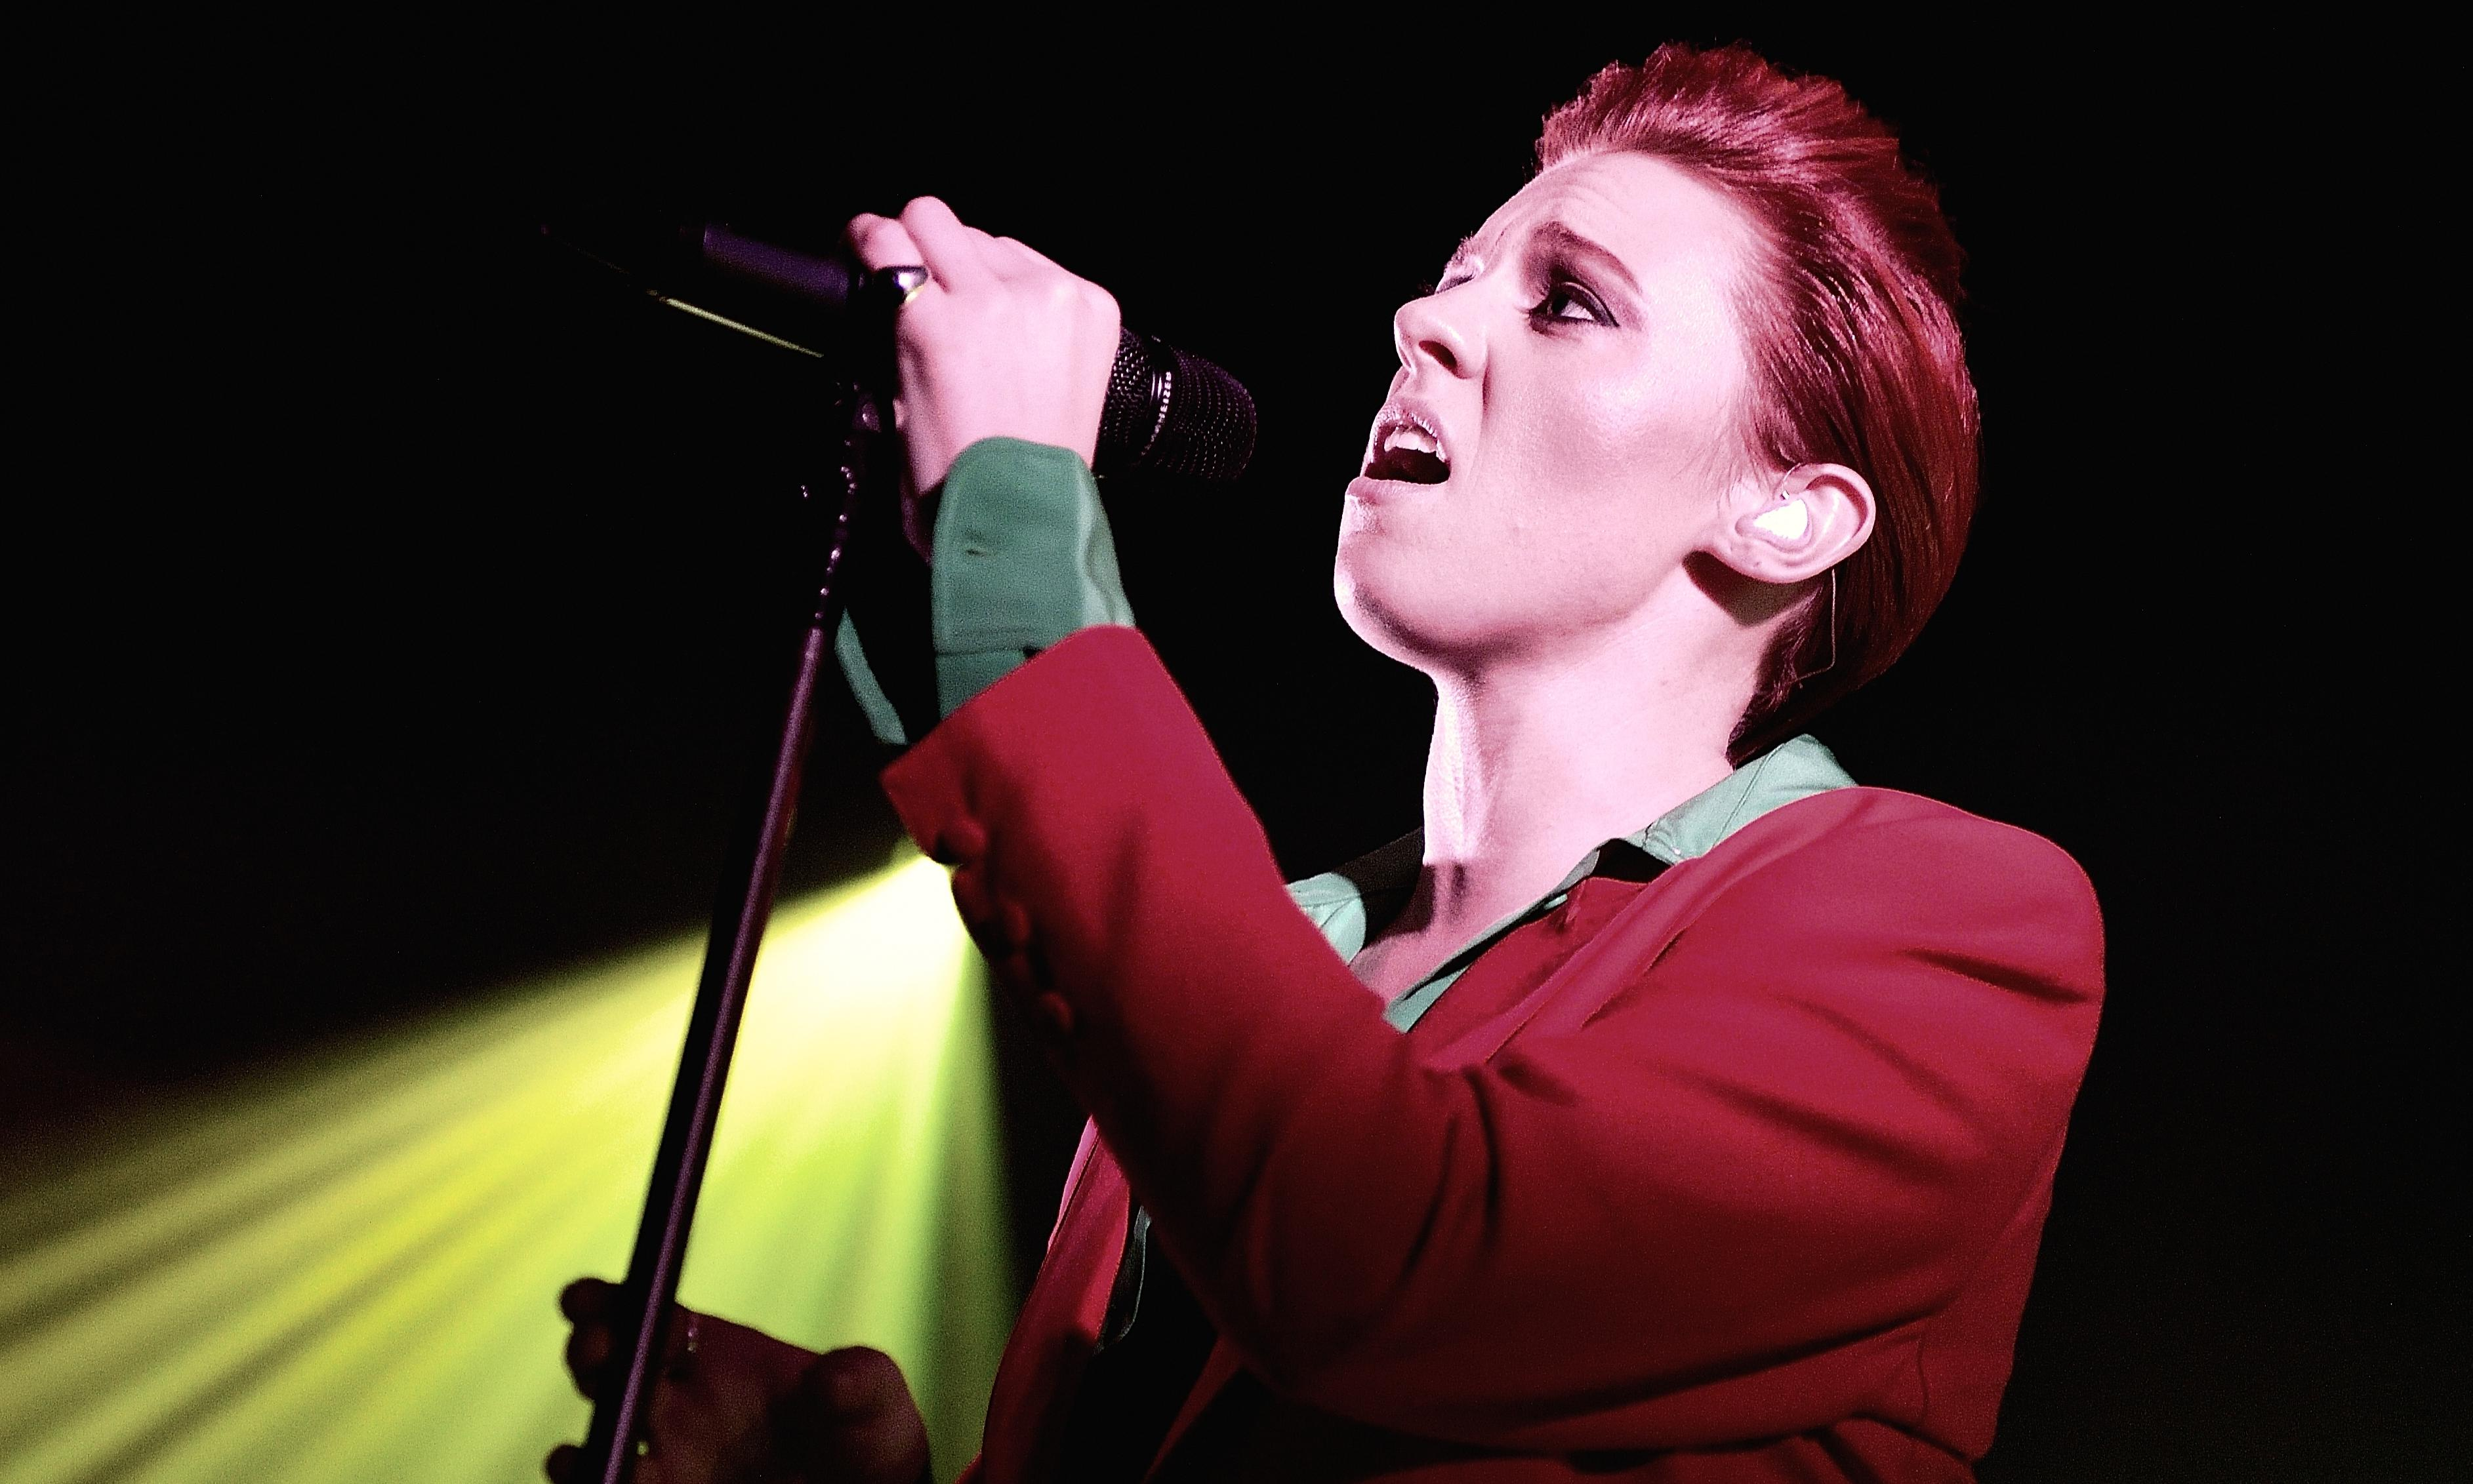 La Roux furious over use of song to promote bulletproof backpacks